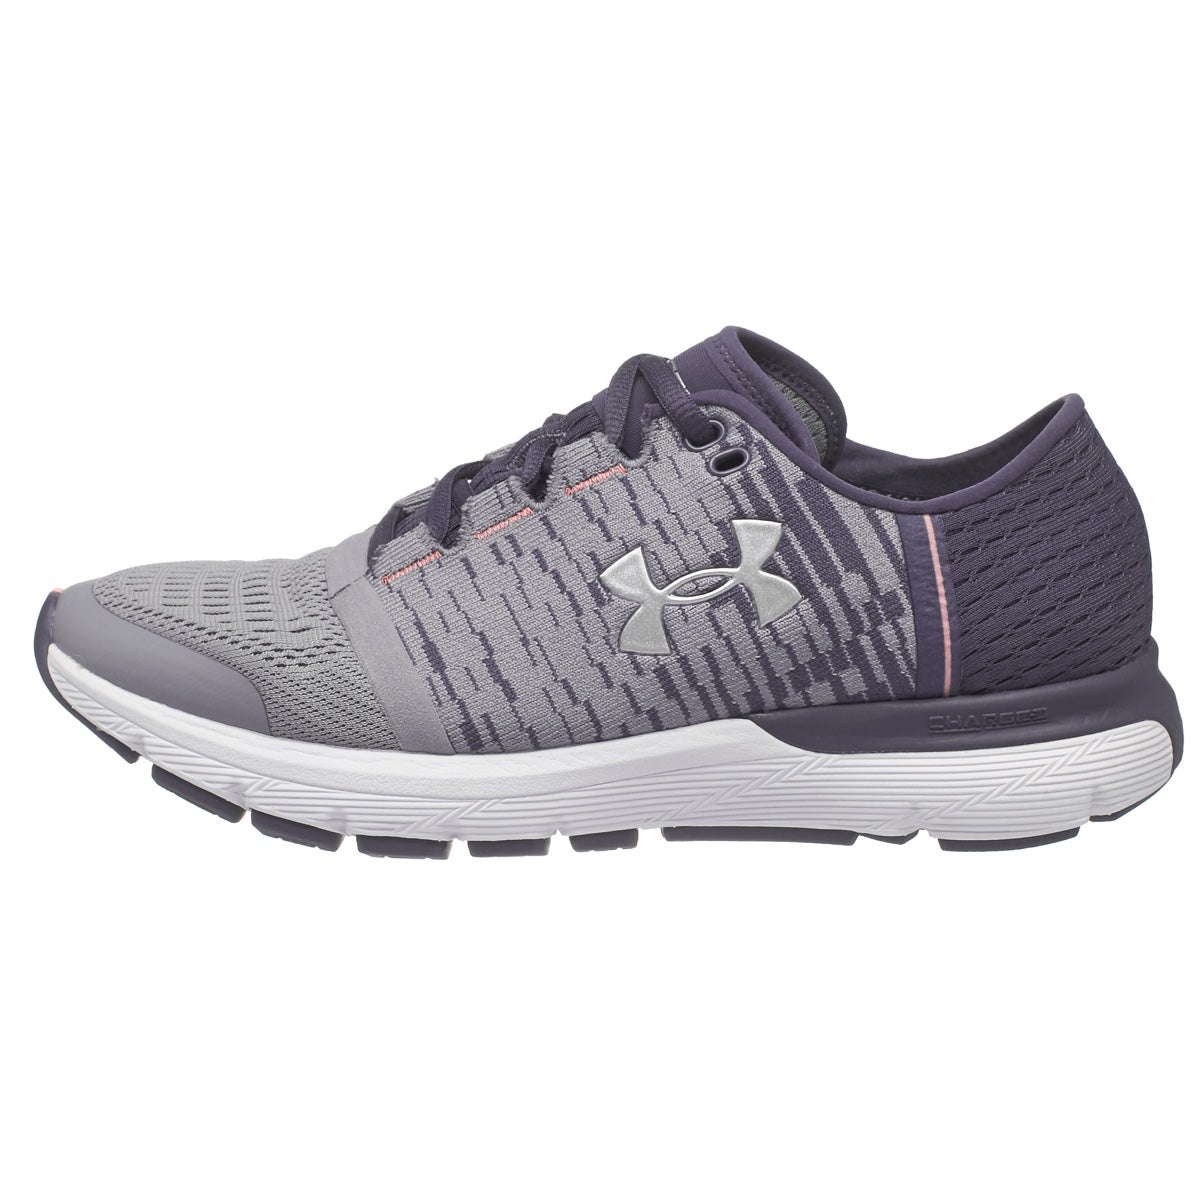 Buy New Balance Women's WR00 Minimus Road Shoe-W, Purple/Green, D US and other Road Running at lasourisglobe-trotteuse.tk Our wide selection is eligible for free shipping and free returns.